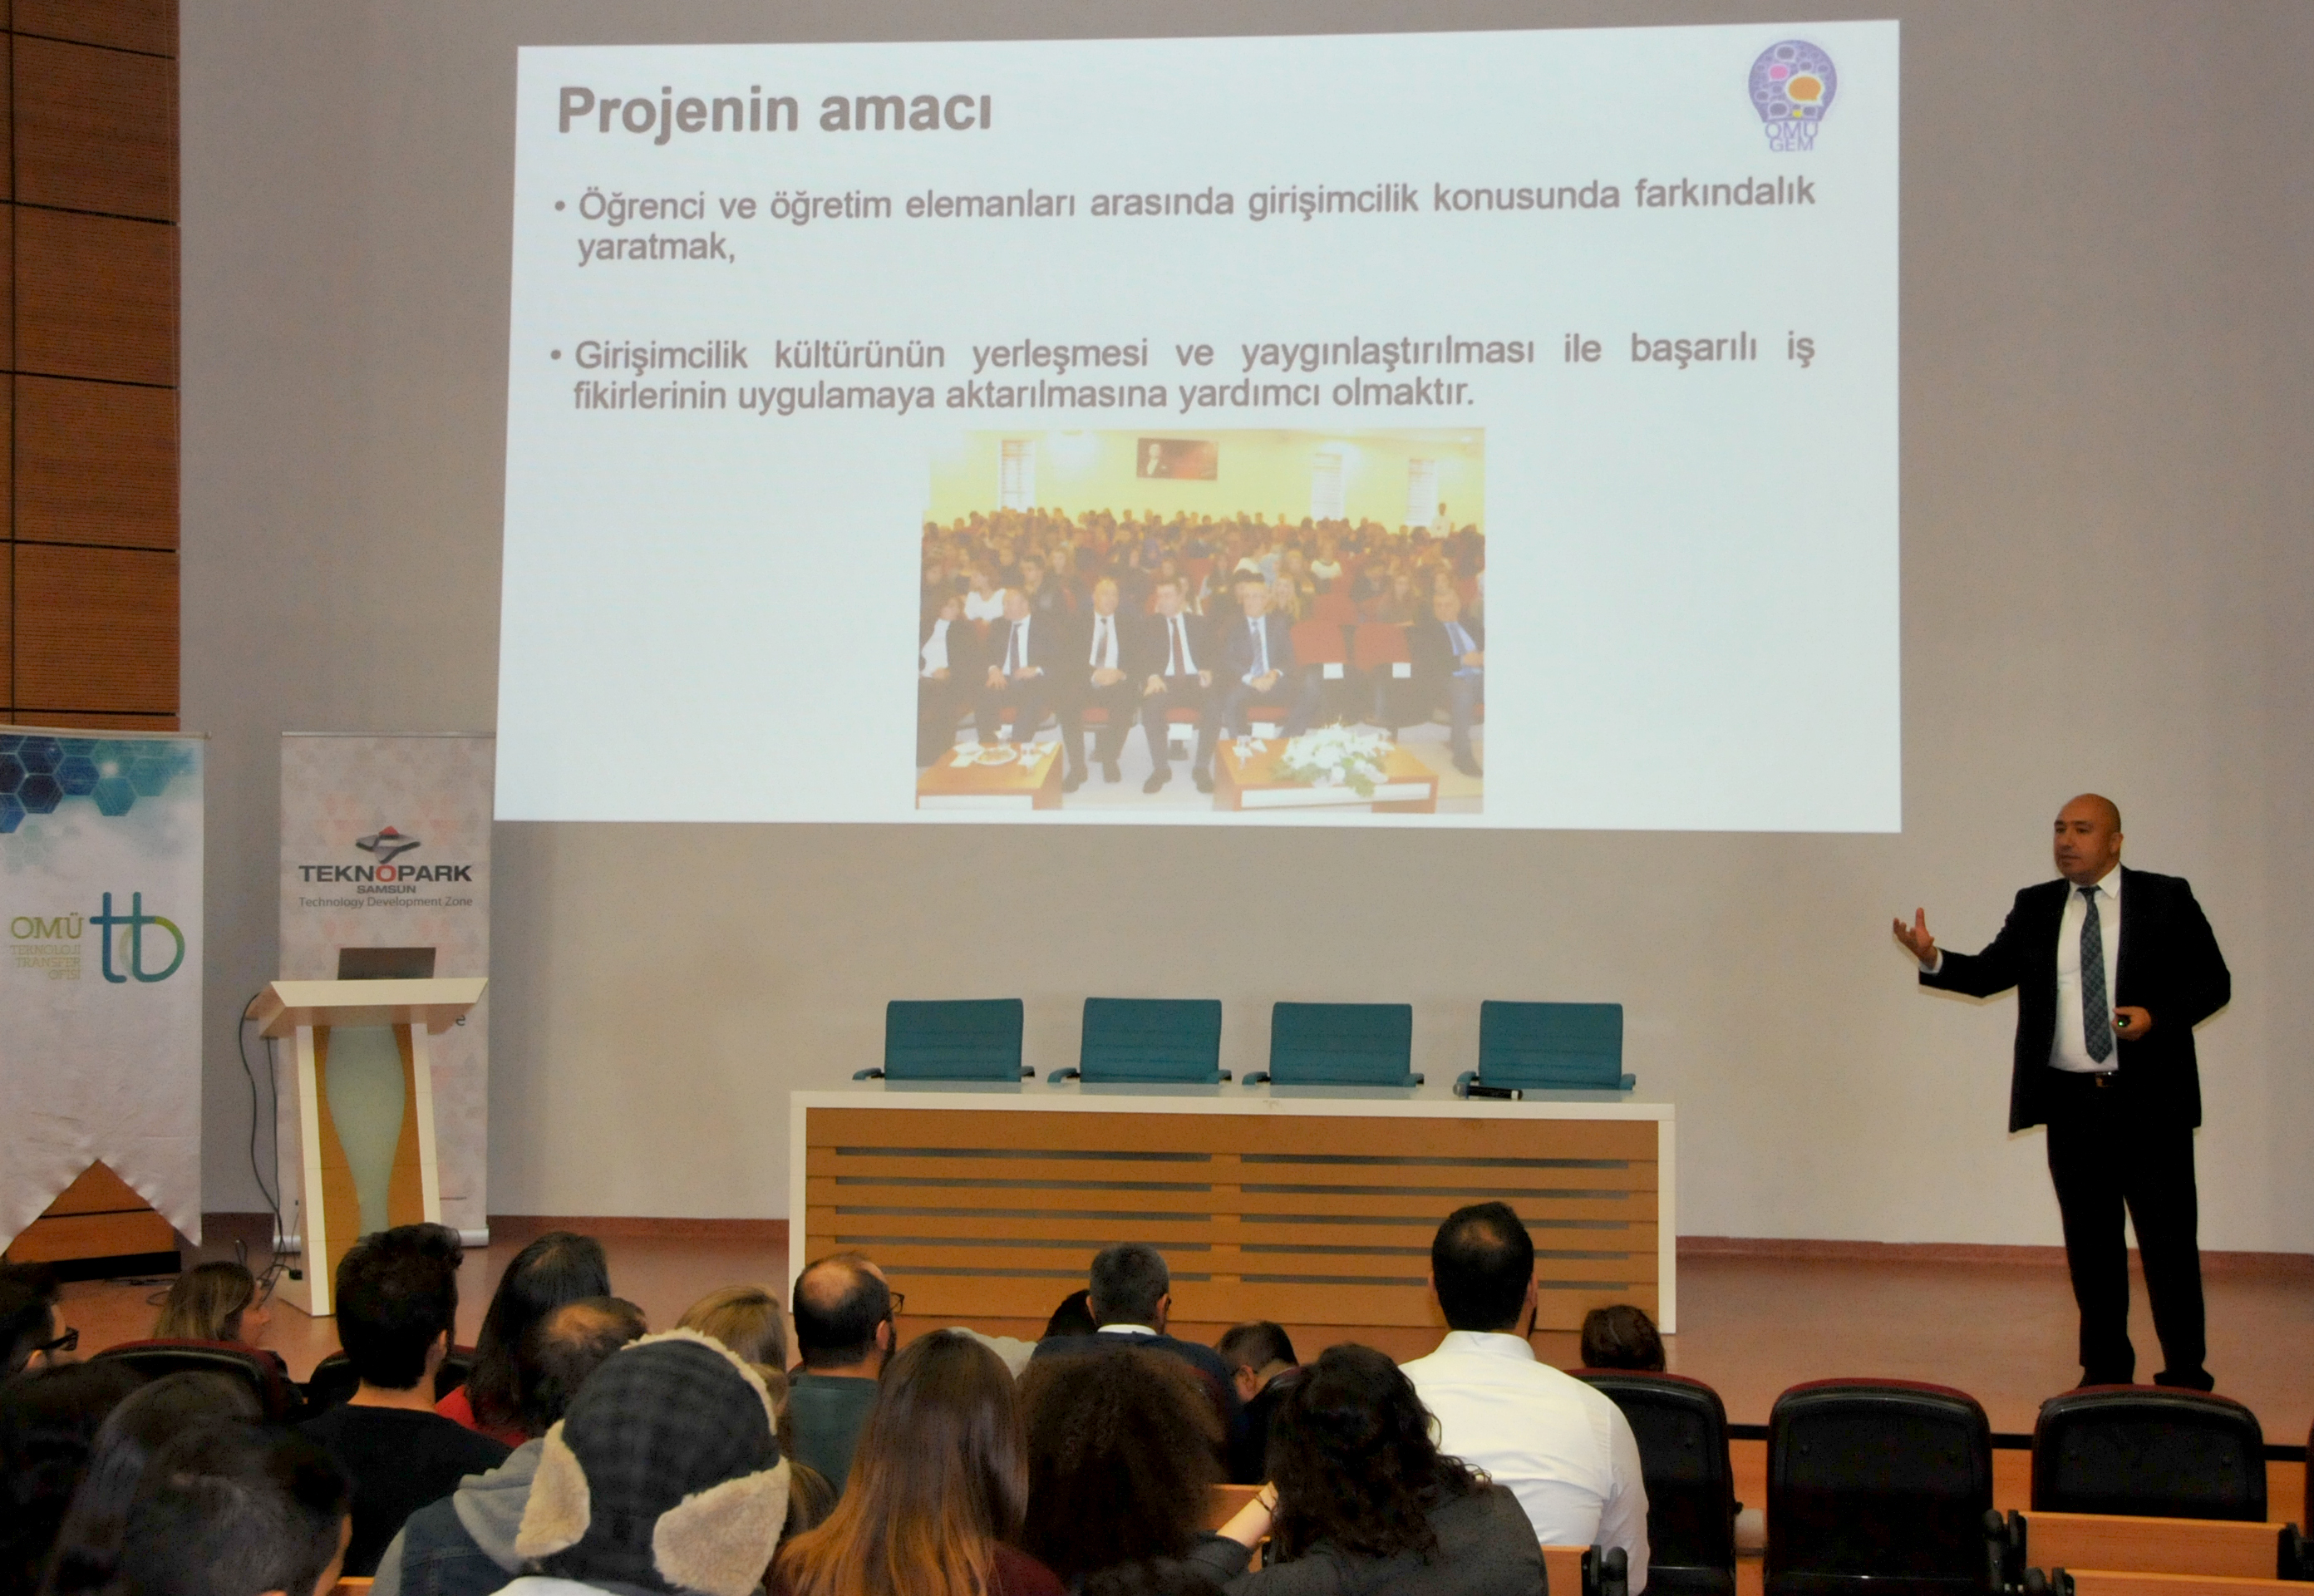 http://www.omu.edu.tr/sites/default/files/files/samsun_technopark_shares_its_projects_with_students/dsc_0181.jpg